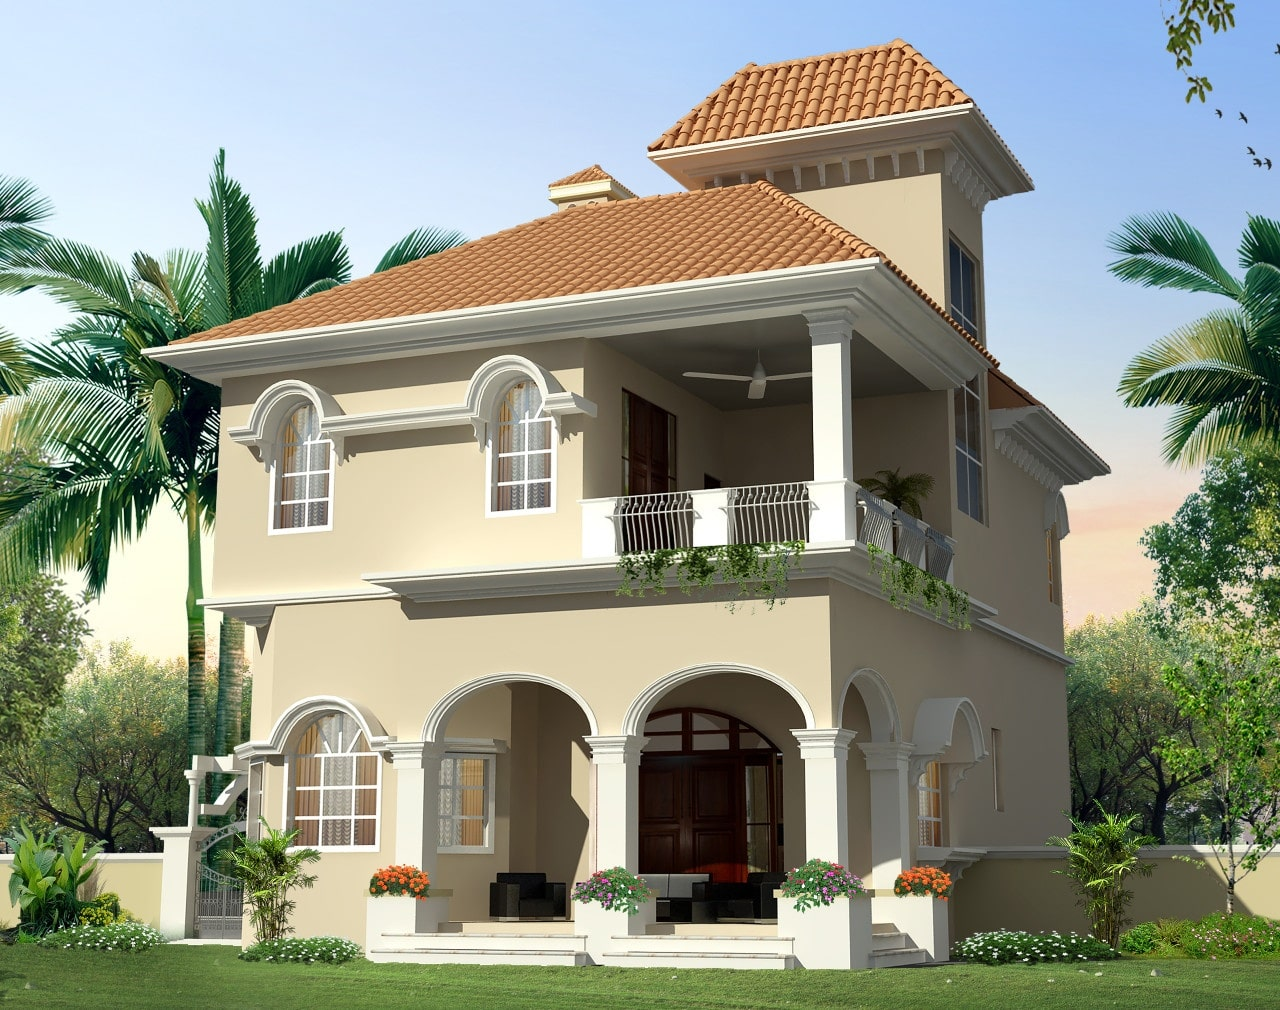 Conceptual rendering of a Mediterranean styled villa HAMILTON rear view at Twin Lake Residences.